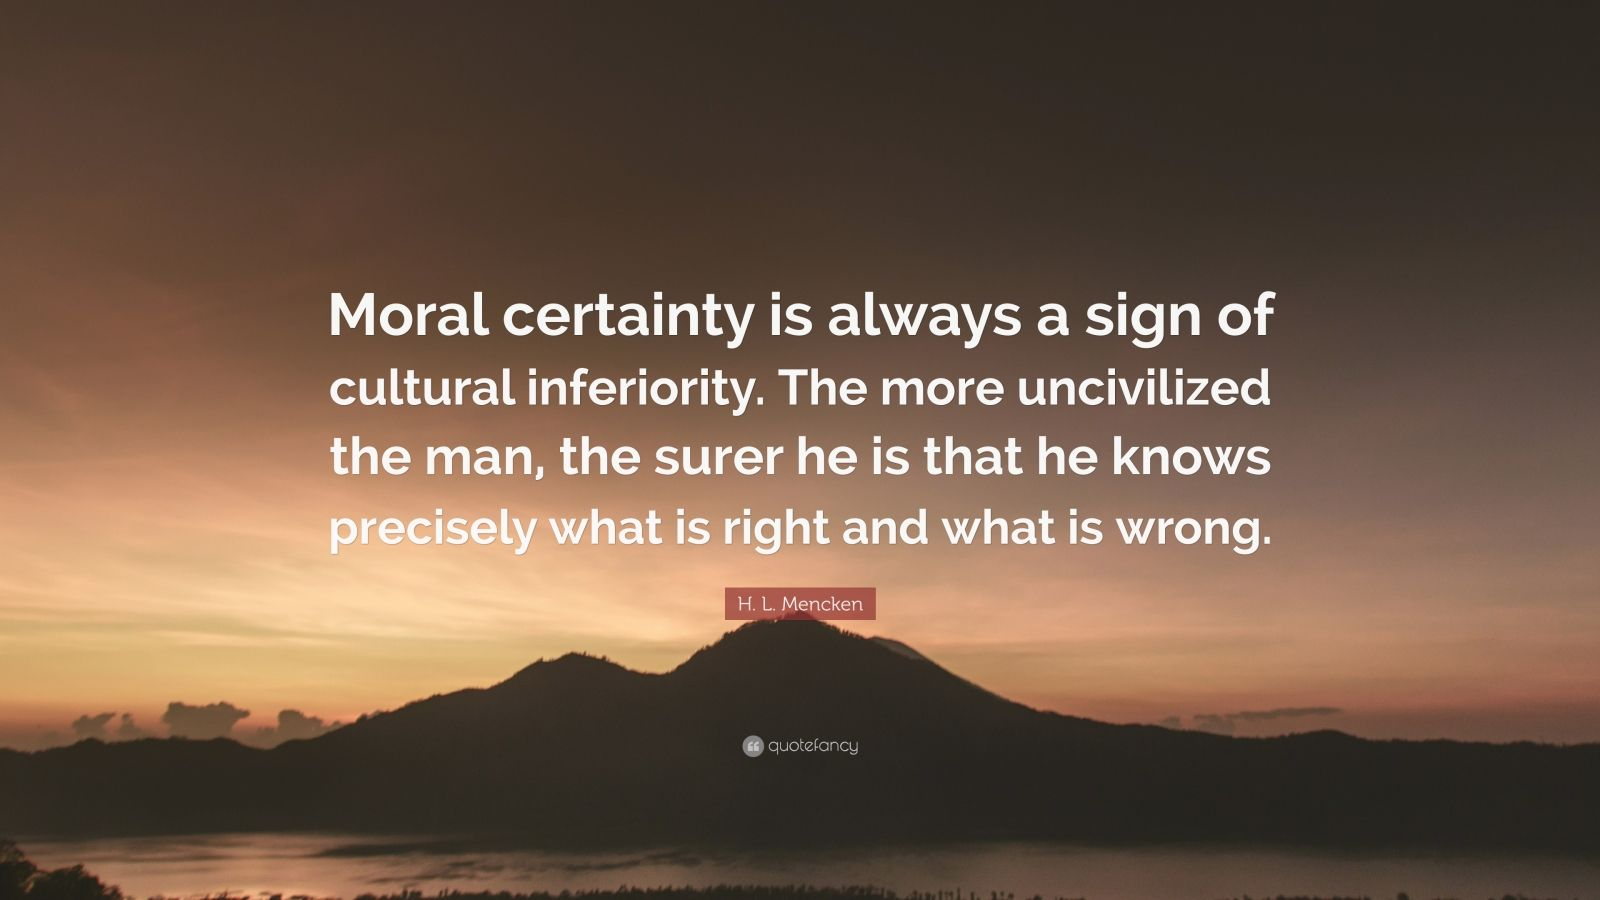 """H. L. Mencken Quote: """"Moral certainty is always a sign of cultural inferiority. The more uncivilized the man, the surer he is that he knows precisely what is right and what is wrong."""""""